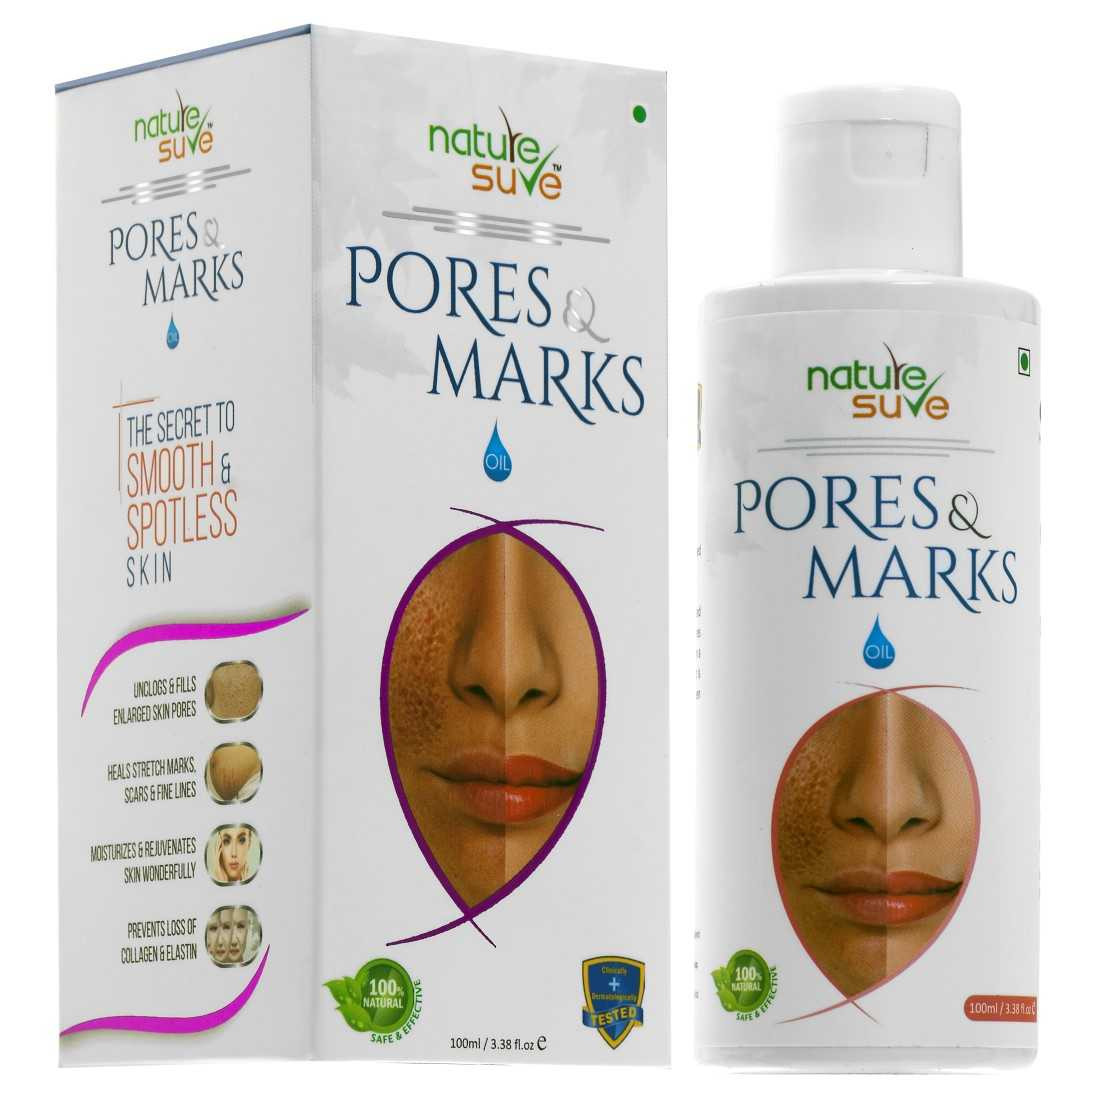 Nature Sure Pores and Marks Oil - 100ml – for enlarged skin pores, stretch marks and fine lines